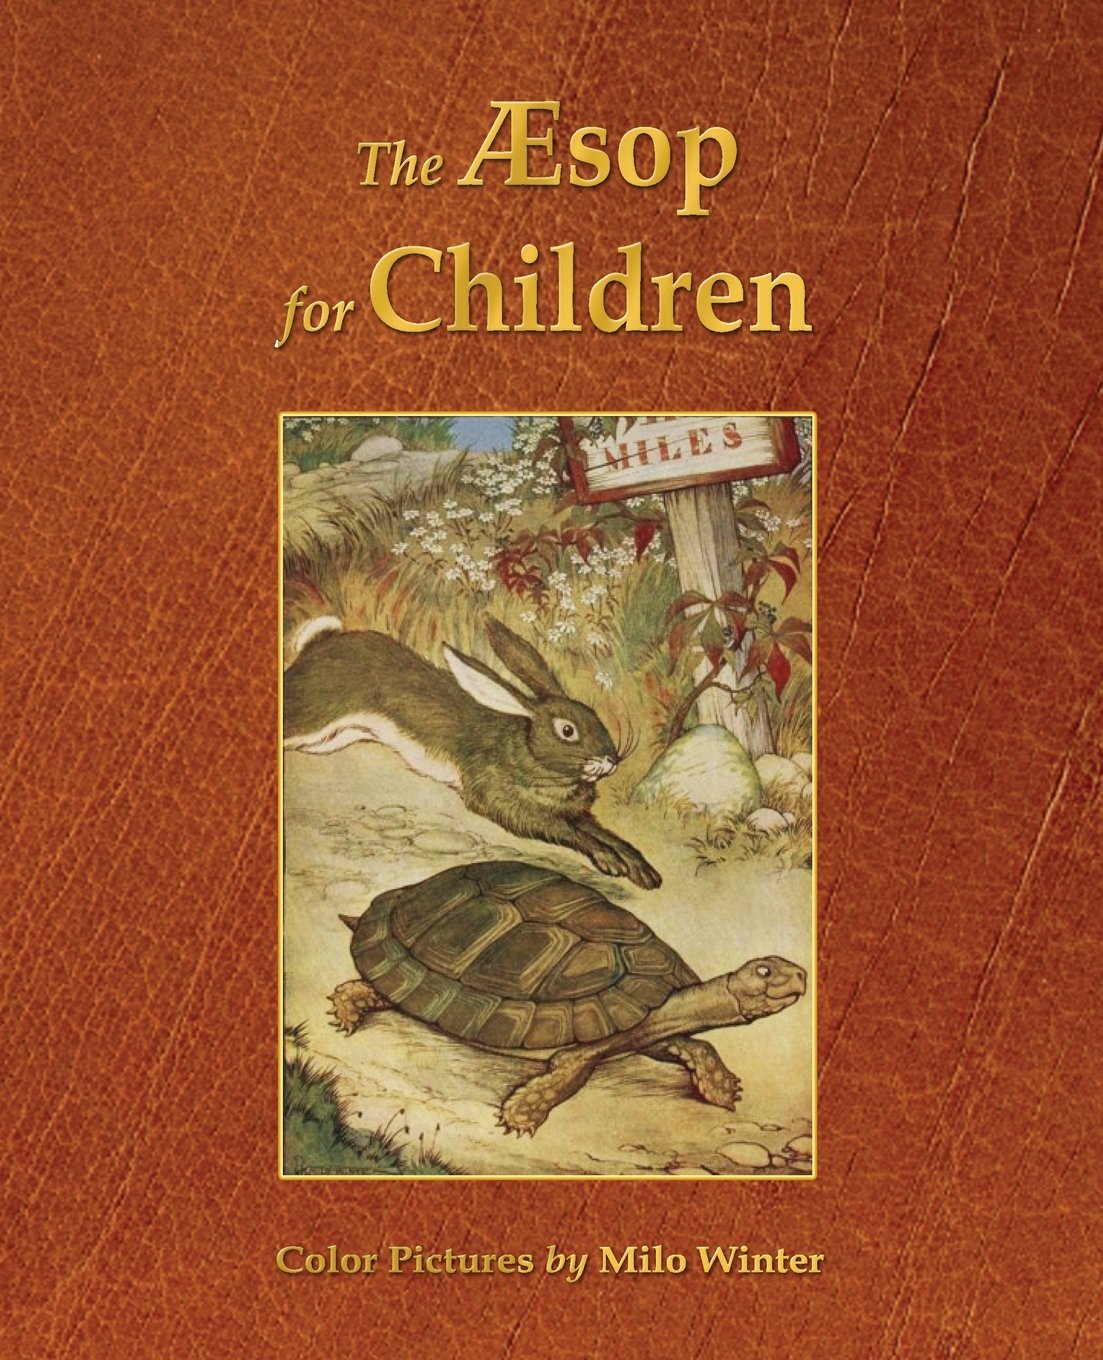 Download The Aesop for Children (Illustrated in Color) Text fb2 ebook